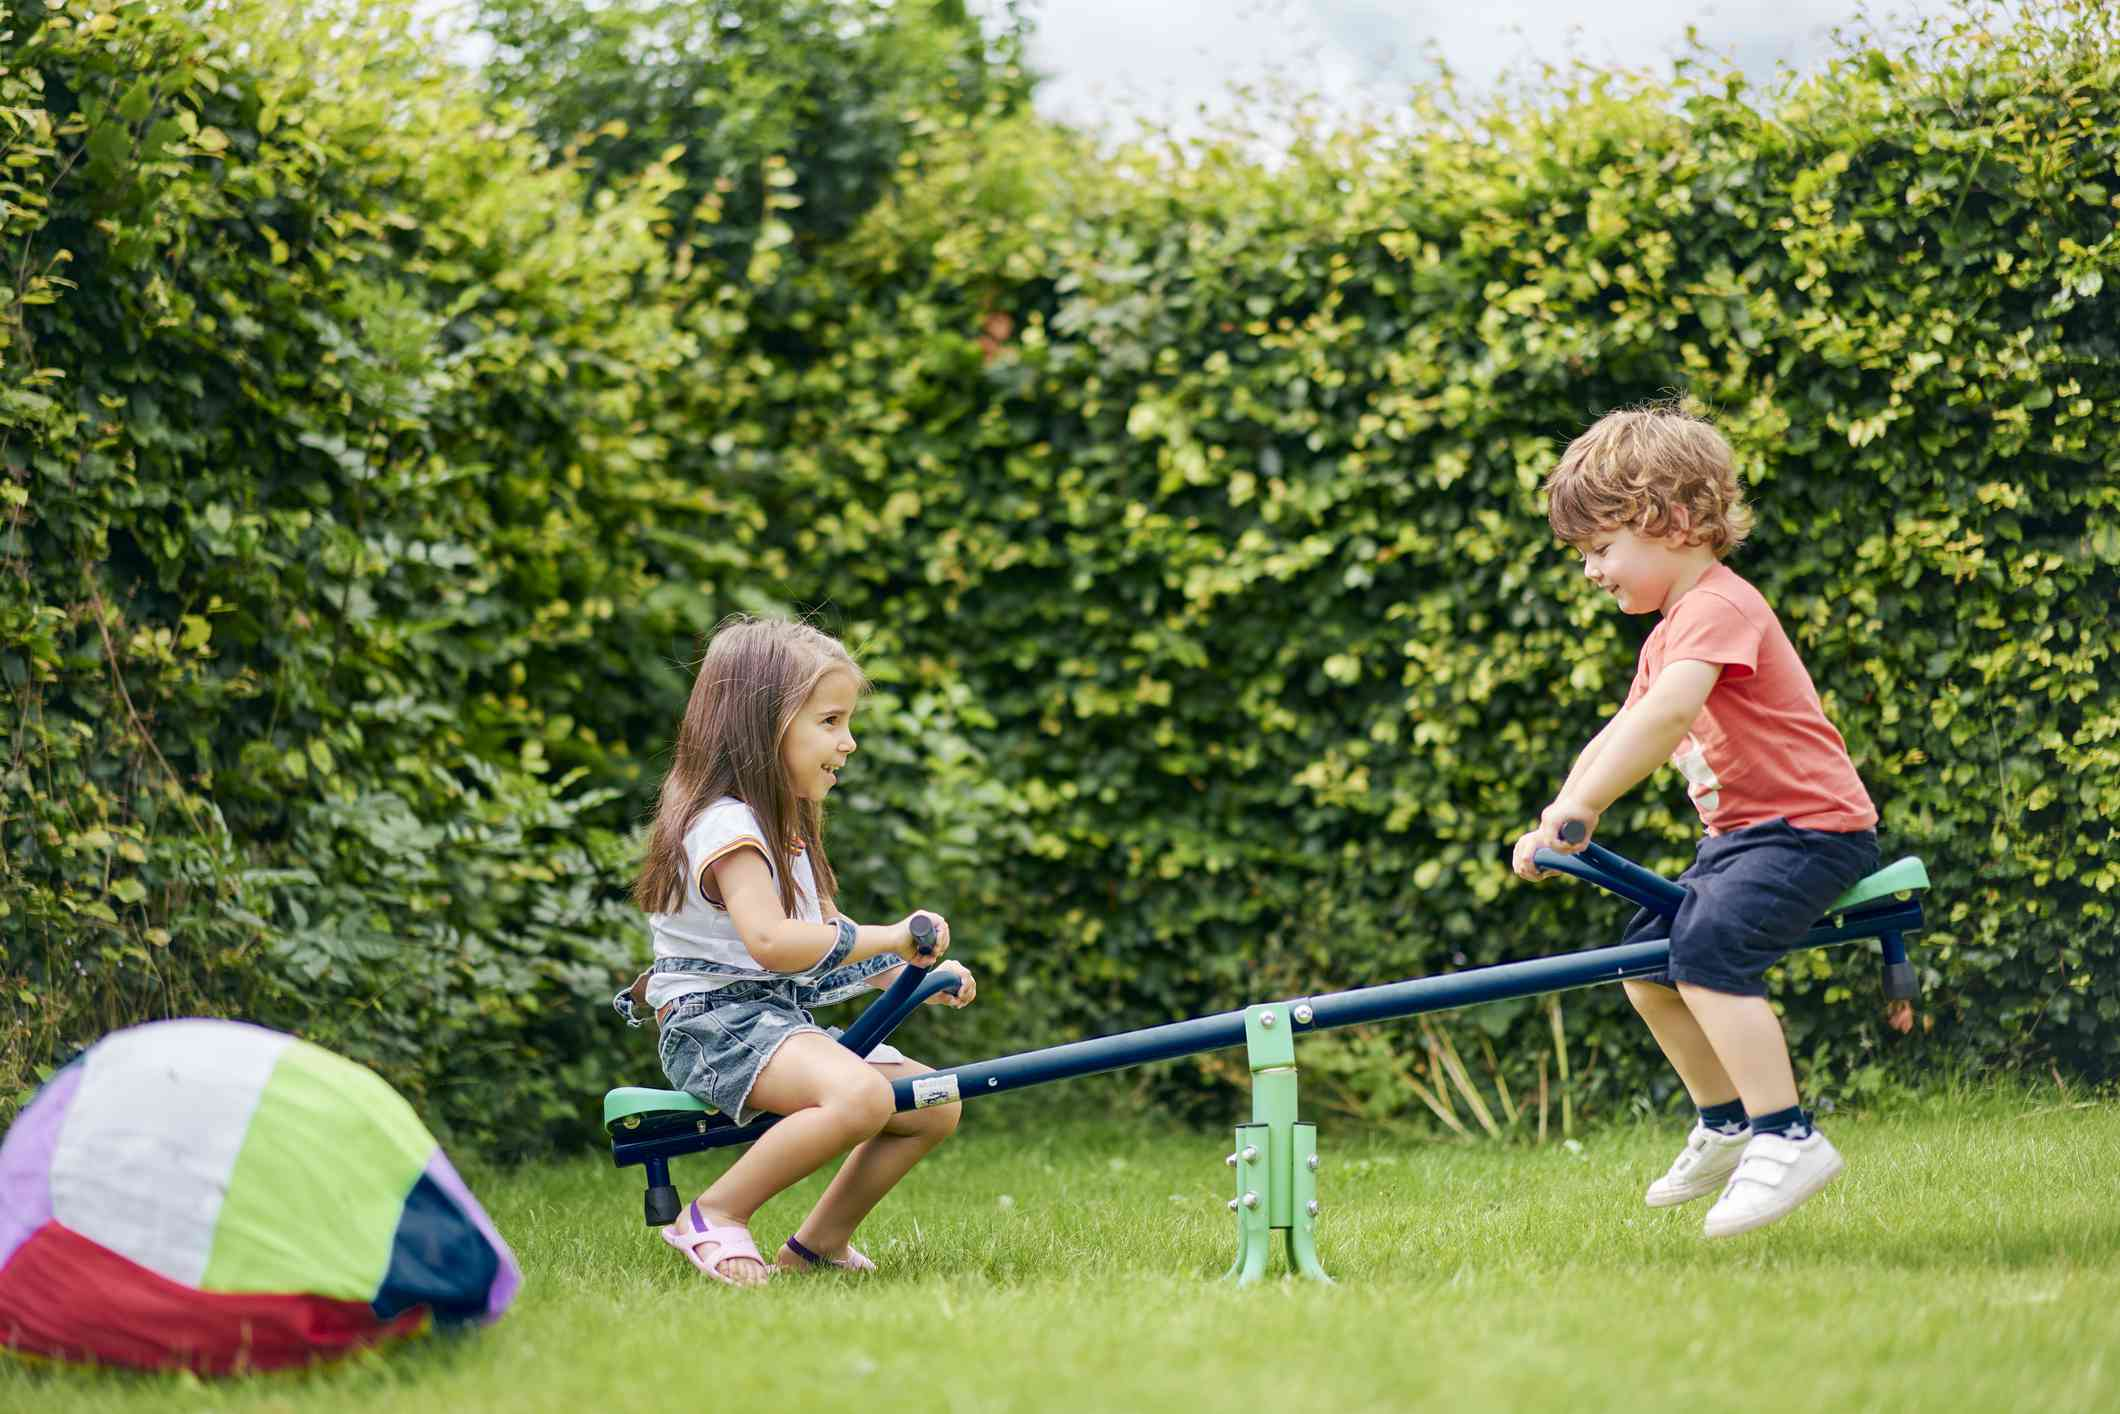 Girl and boy on toy seesaw in garden